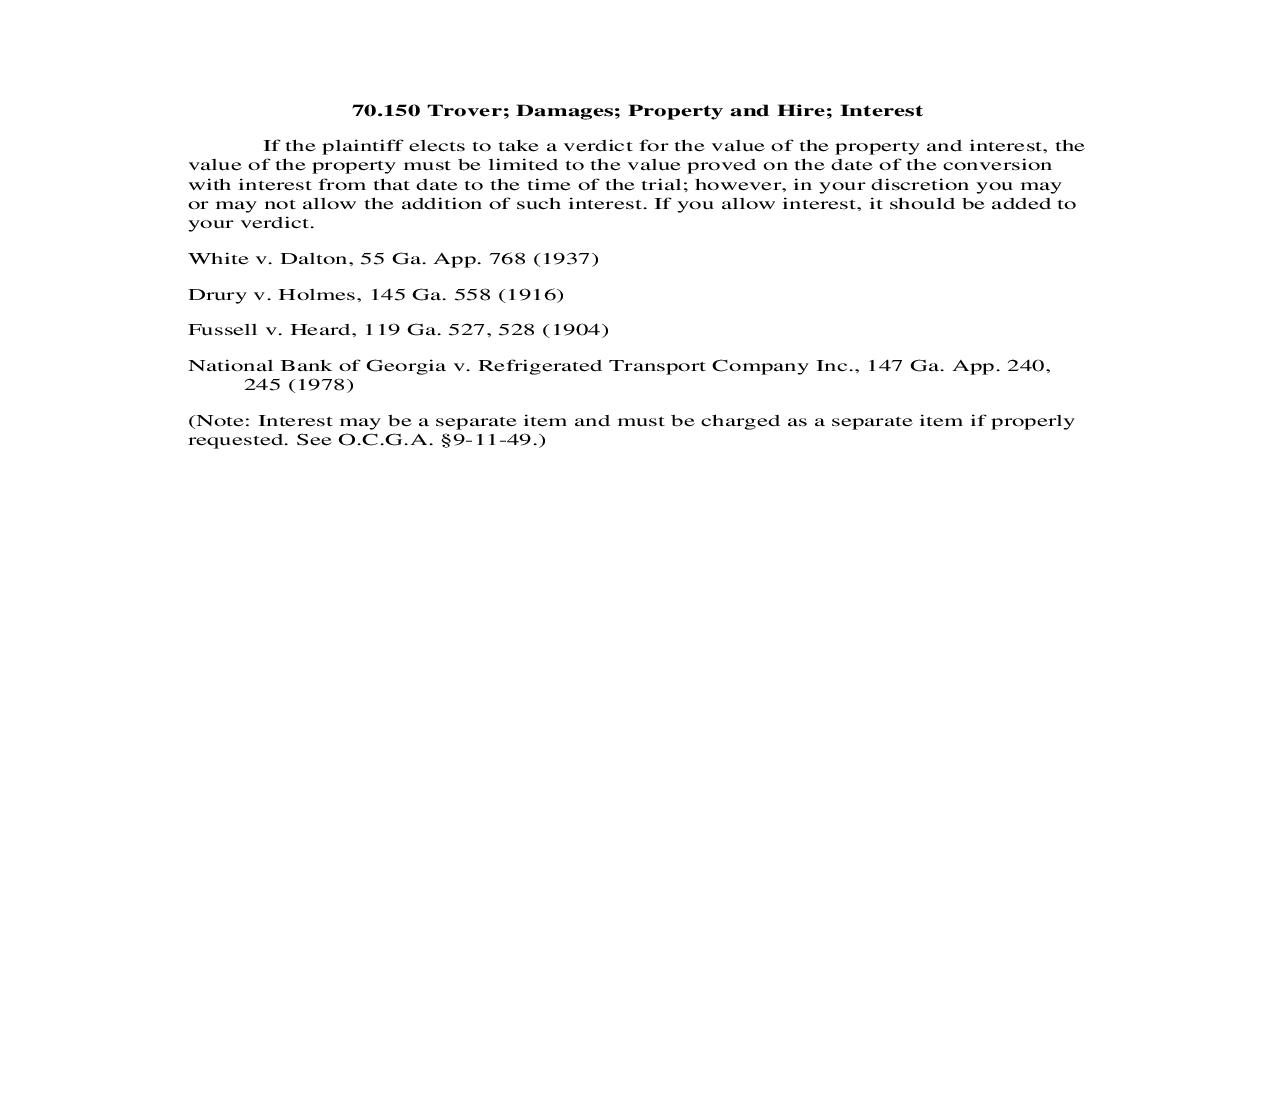 70.150 Trover; Damages; Property and Hire; Interest | Pdf Doc Docx | Georgia_JI